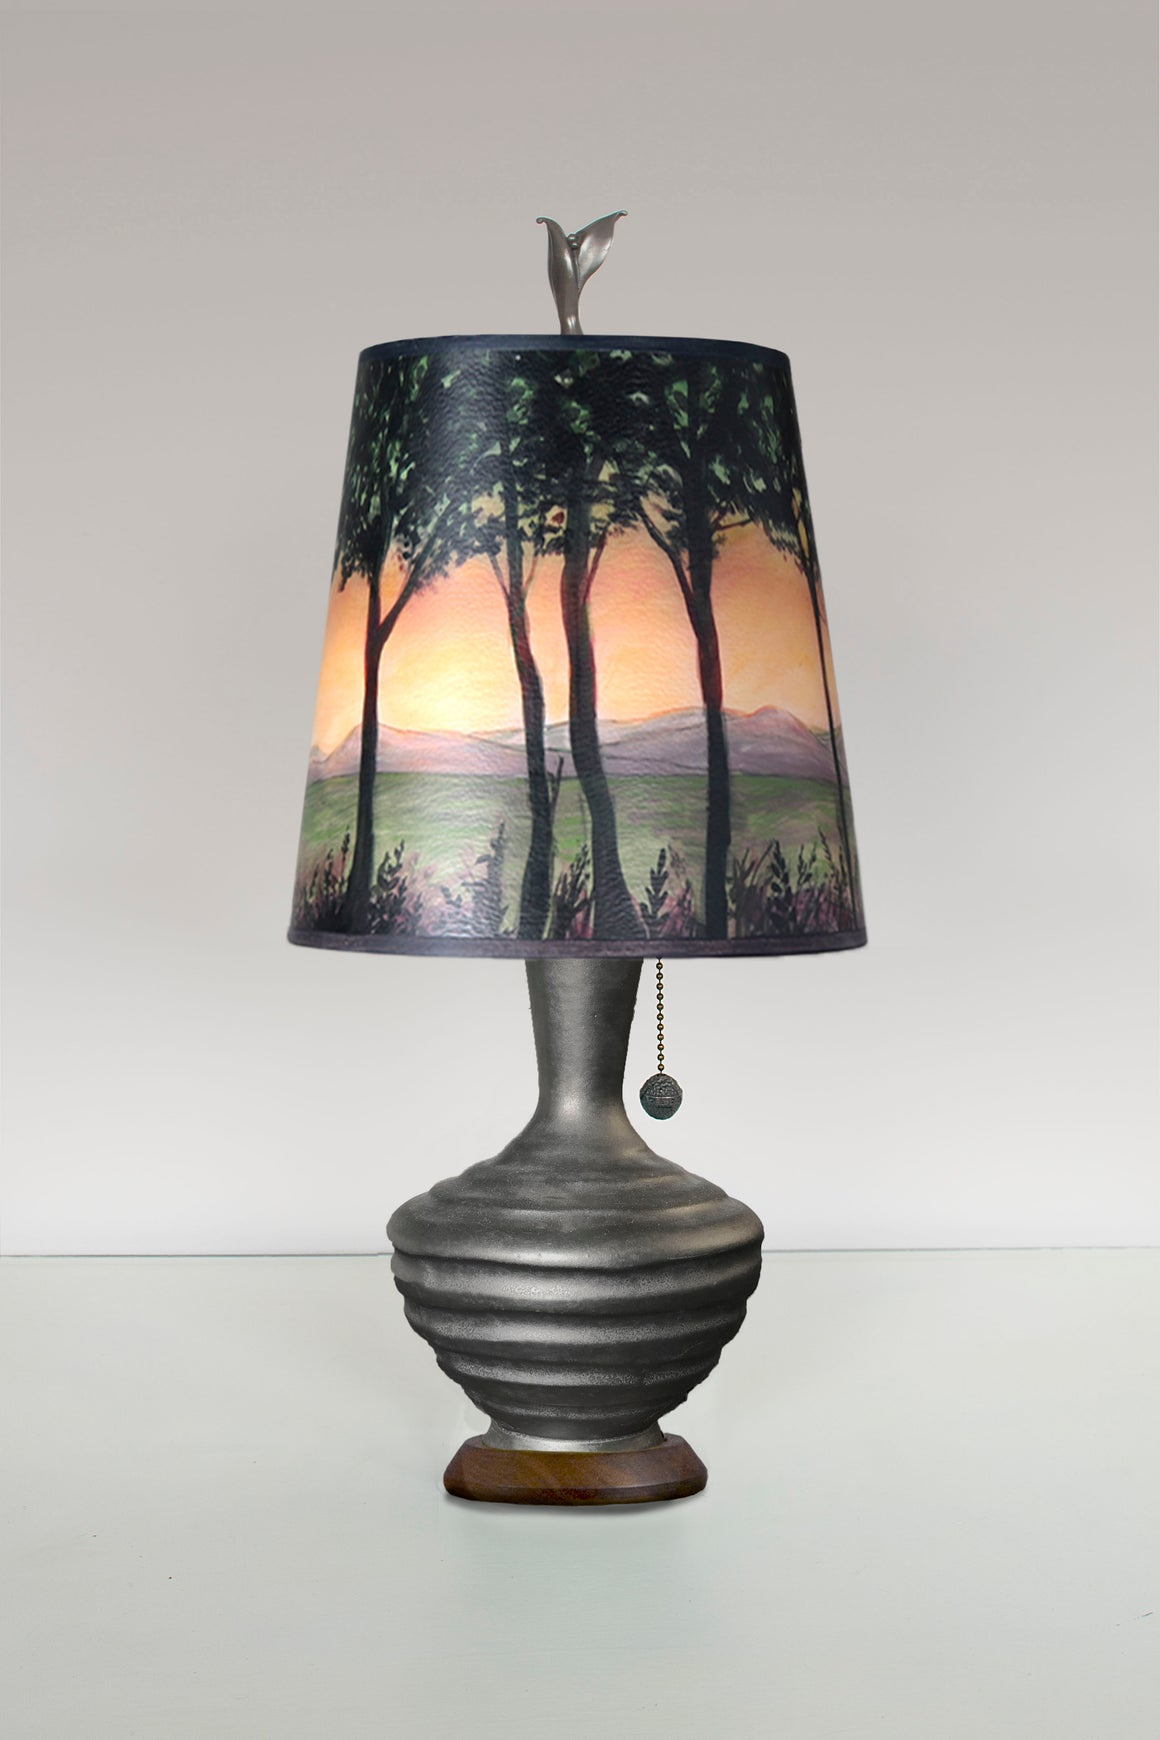 Foundry Ceramic Table Lamp with Small Drum Shade in Dawn